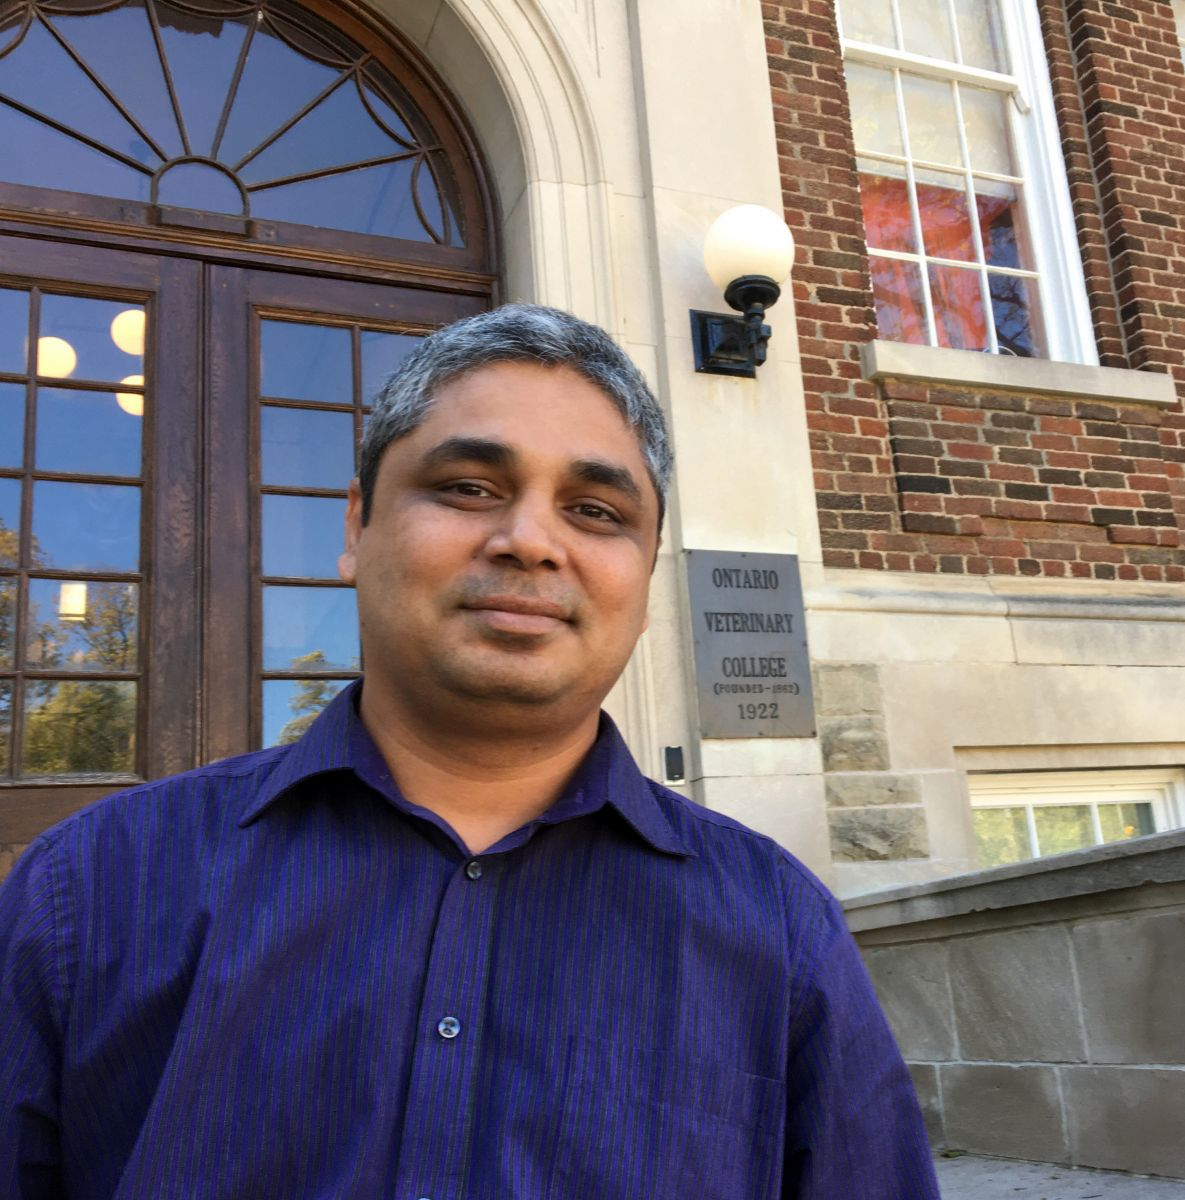 Dr. Salah Uddin Khan, a post-doctoral fellow in Prof. Amy Greer's lab at the University of Guelph's Ontario Veterinary College